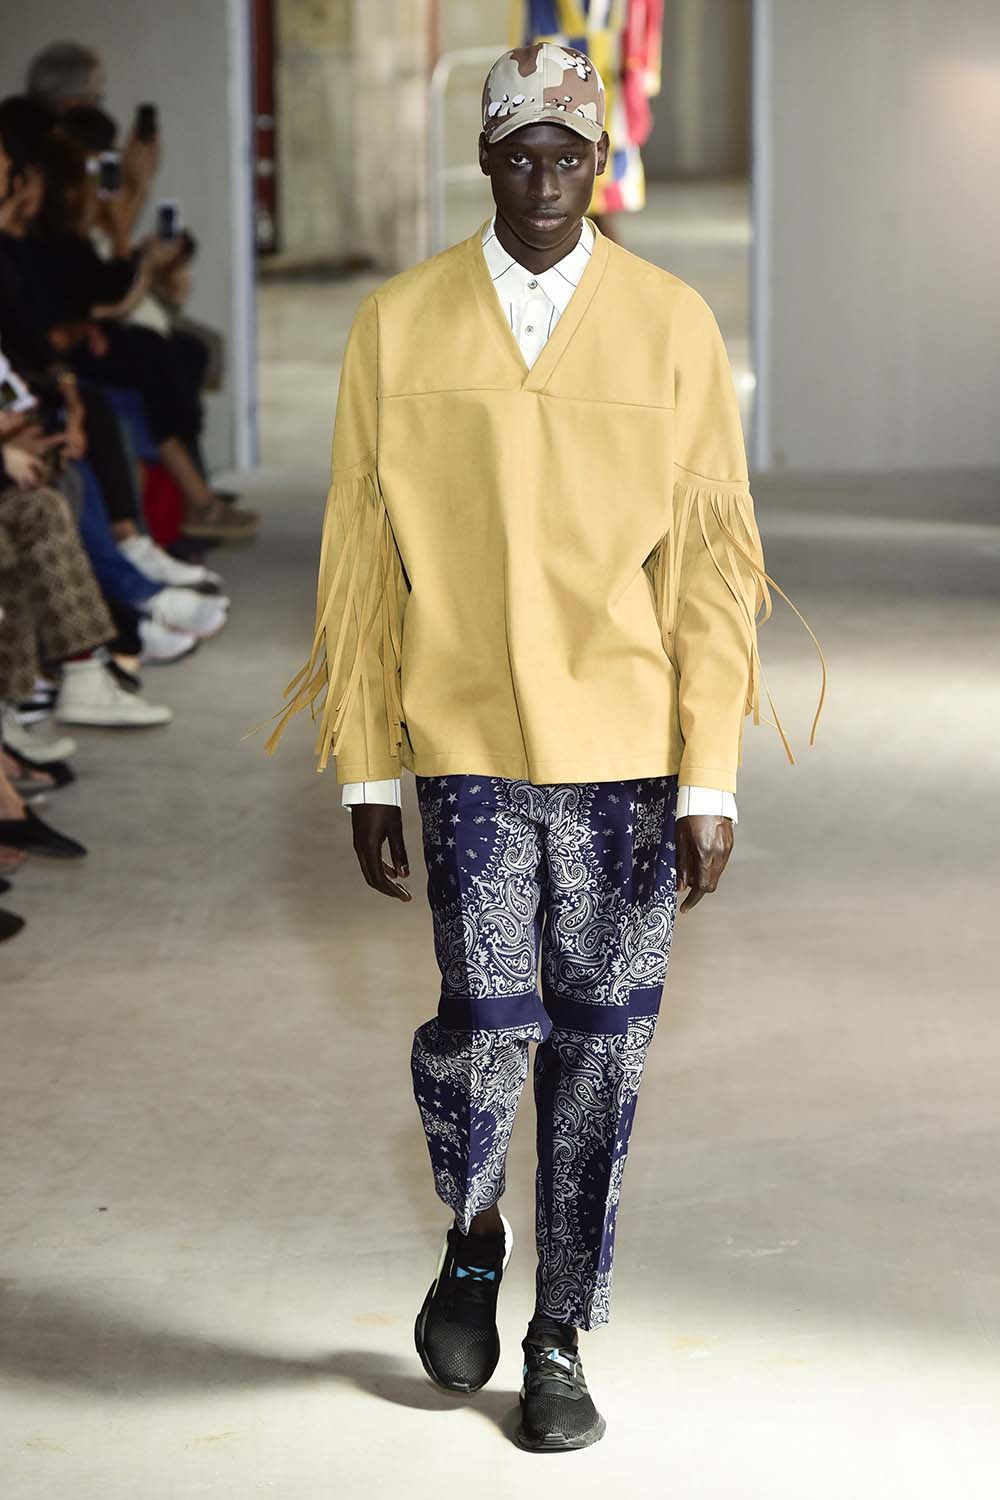 Etudes Paris Fashion Week Men's SS19 - Sagaboi - Look 5